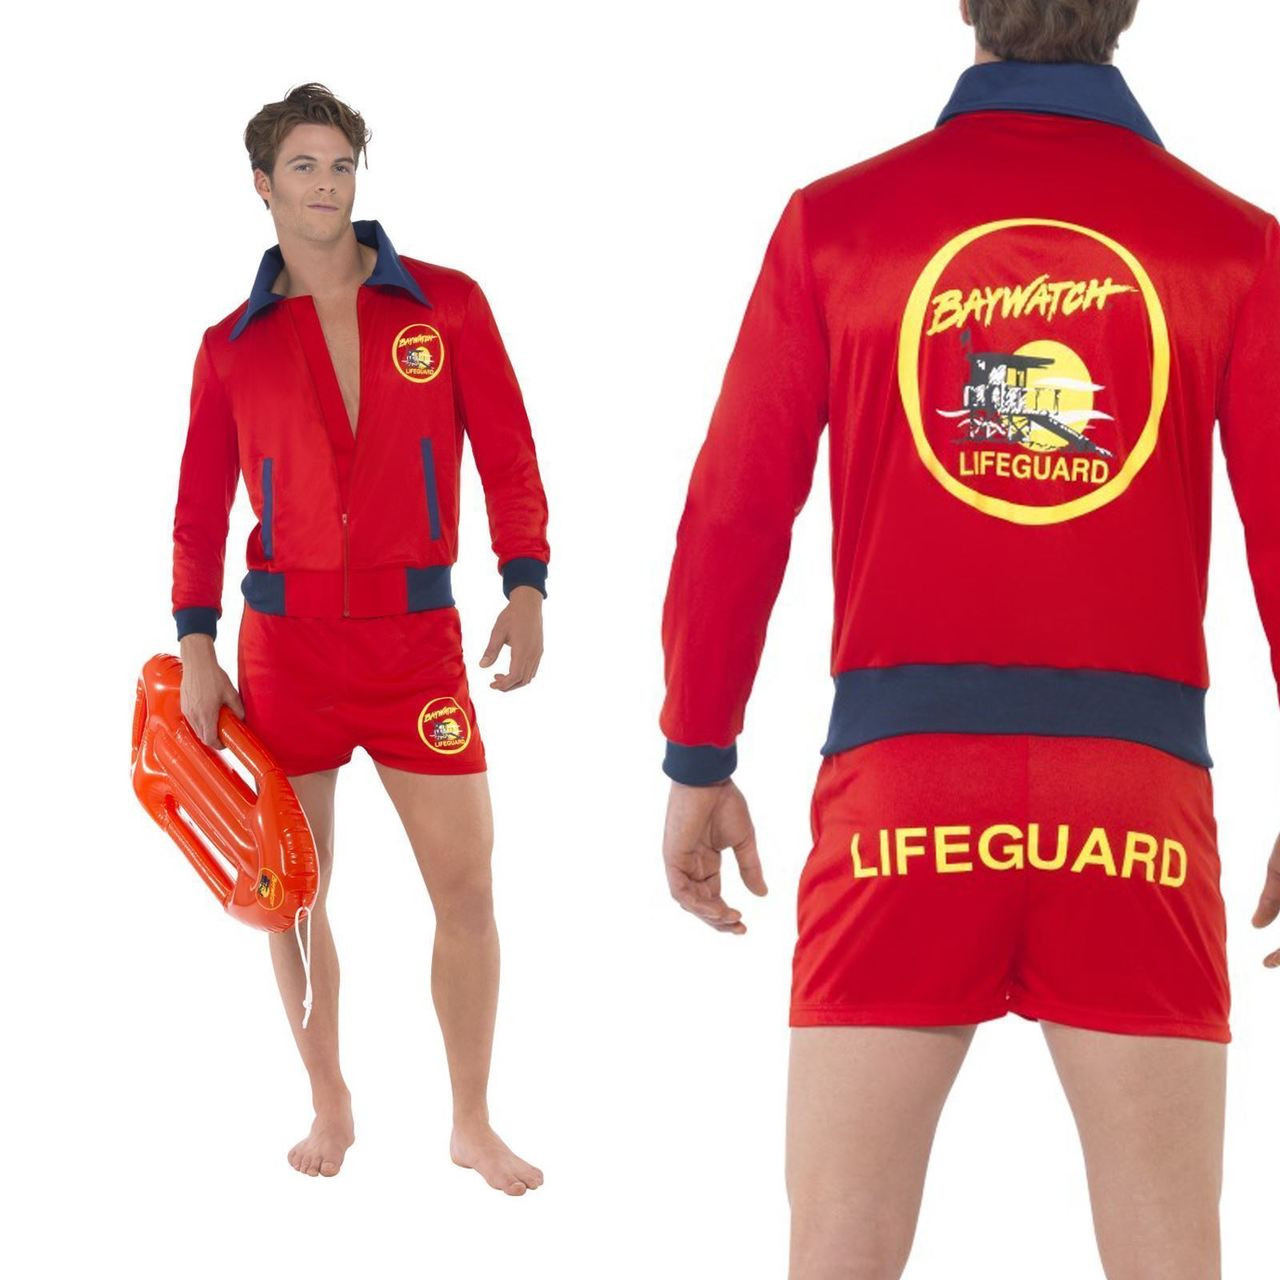 Smiffys Baywatch Lifeguard Beach The Rock Adult Mens Halloween Costume 20587  sc 1 st  Fearless Apparel & Smiffys Baywatch Lifeguard Beach The Rock Adult Mens Halloween ...